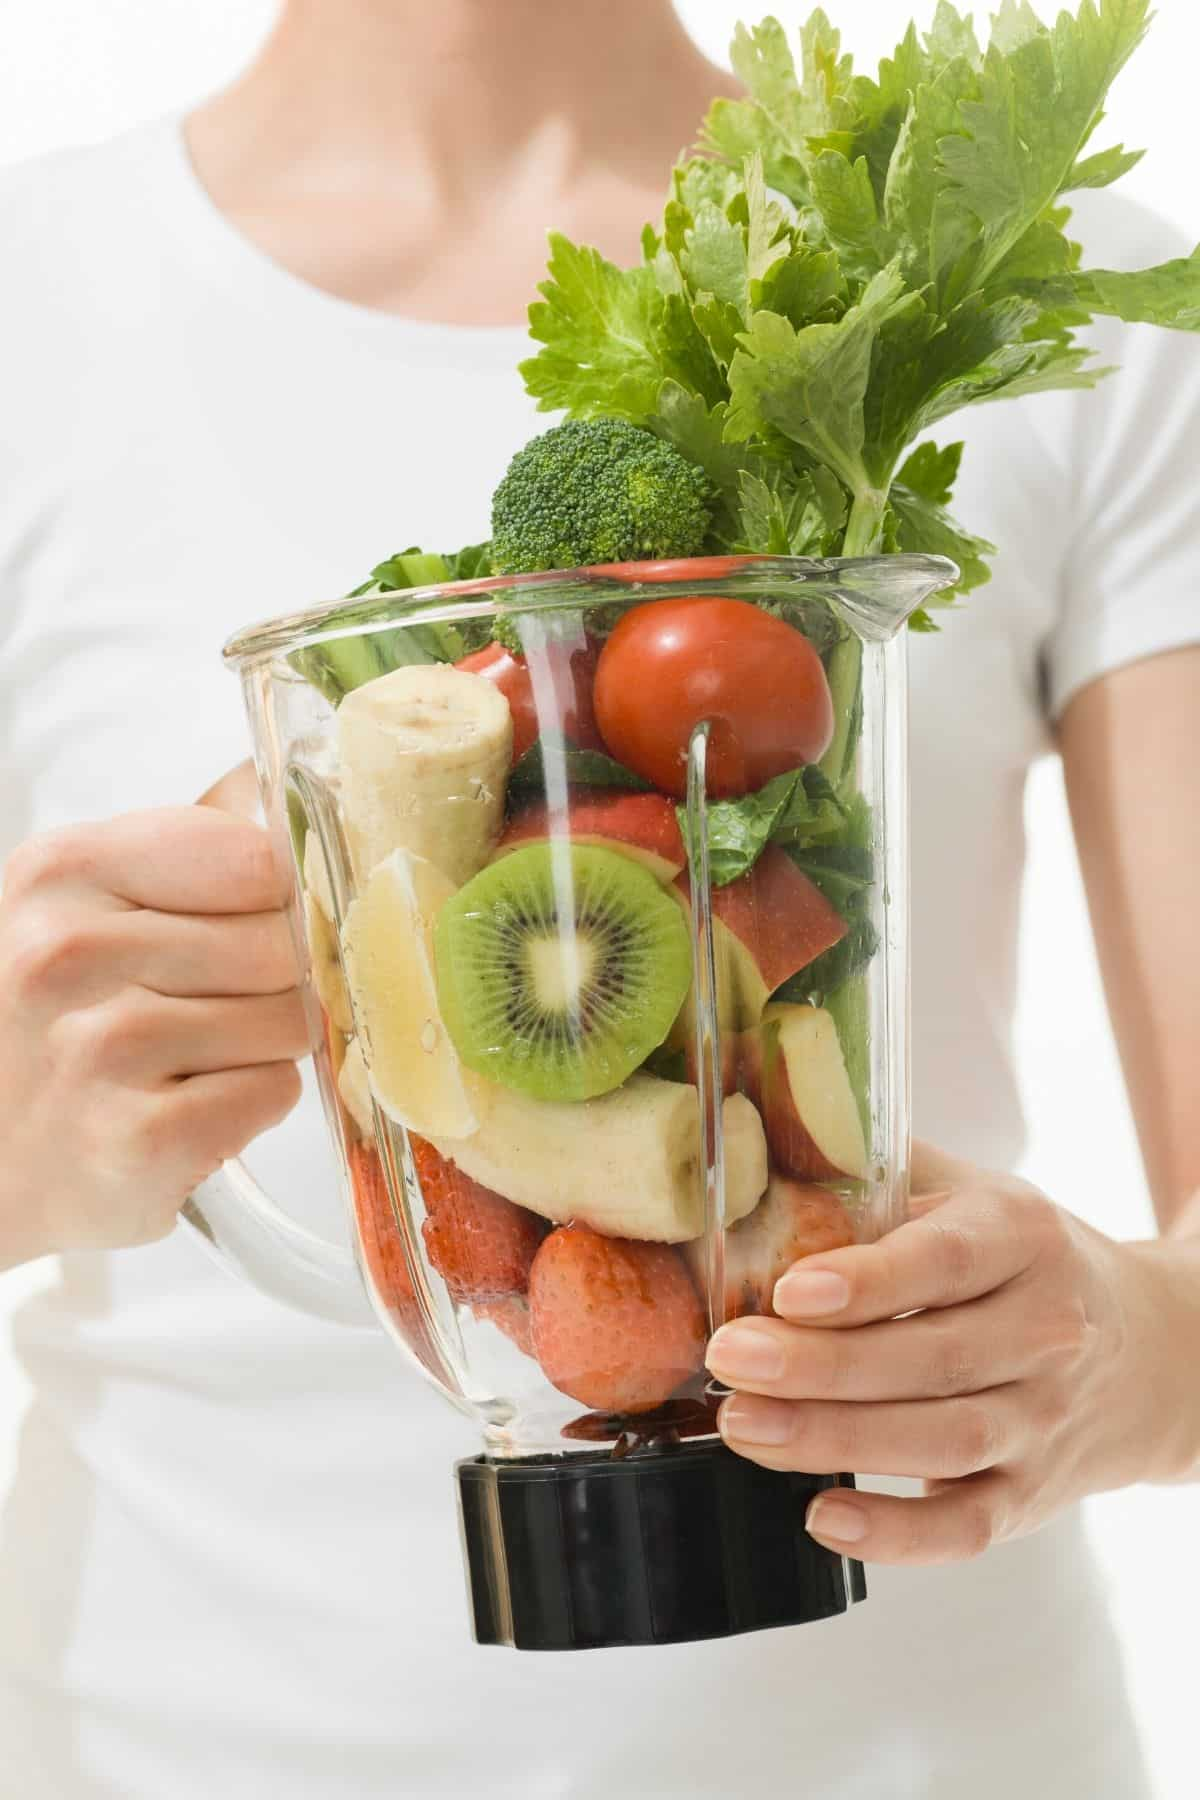 woman holding a blender with fruits and veggies in it